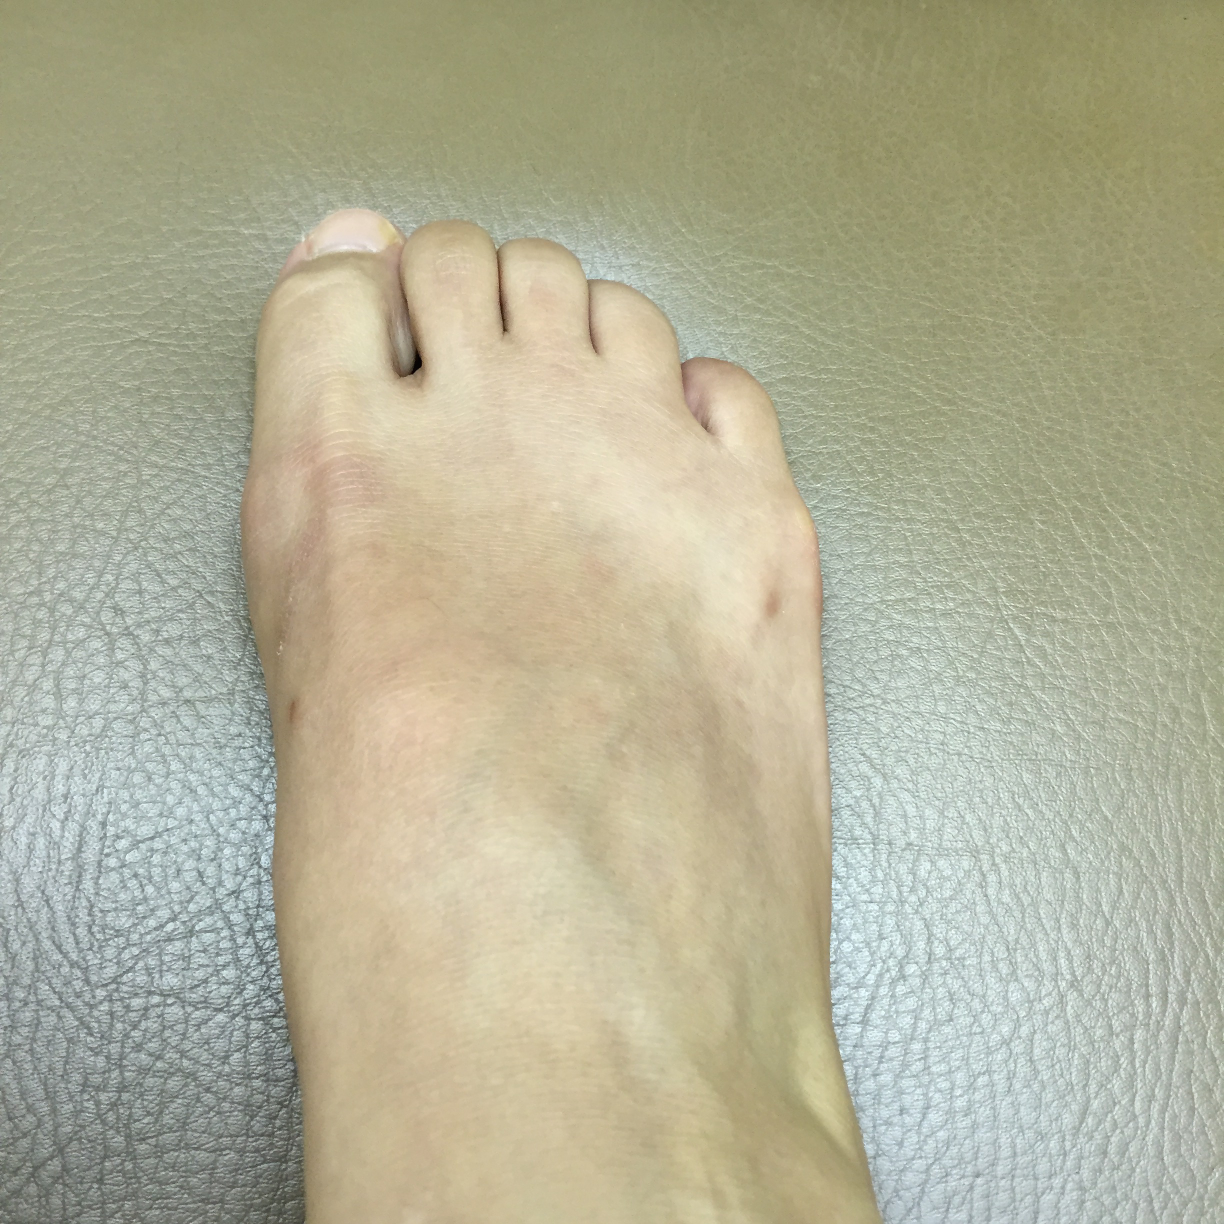 My feet are literally Rectangles. So I sized up once to fit my Dainese since they're so narrow. This photo was taken a couple days after my accident several years ago wearing my old  Sidis.  Just some bruising and swelling, no breaks/fractures/sprains.